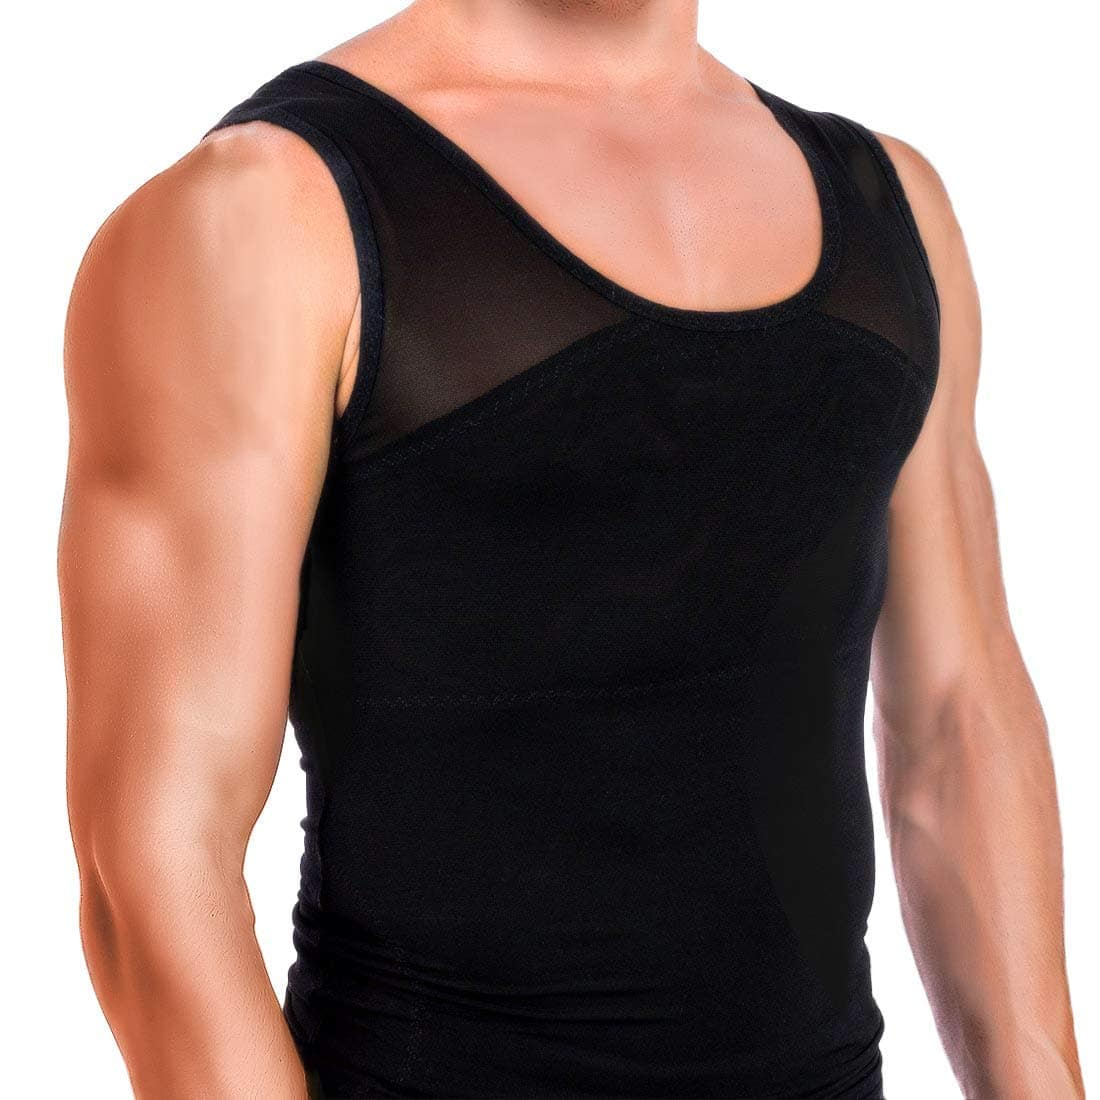 335675bbbf4 Men s Body Shaper Compression Shirt Abs Abdomen Slim Tank Top Undershirt   8.99